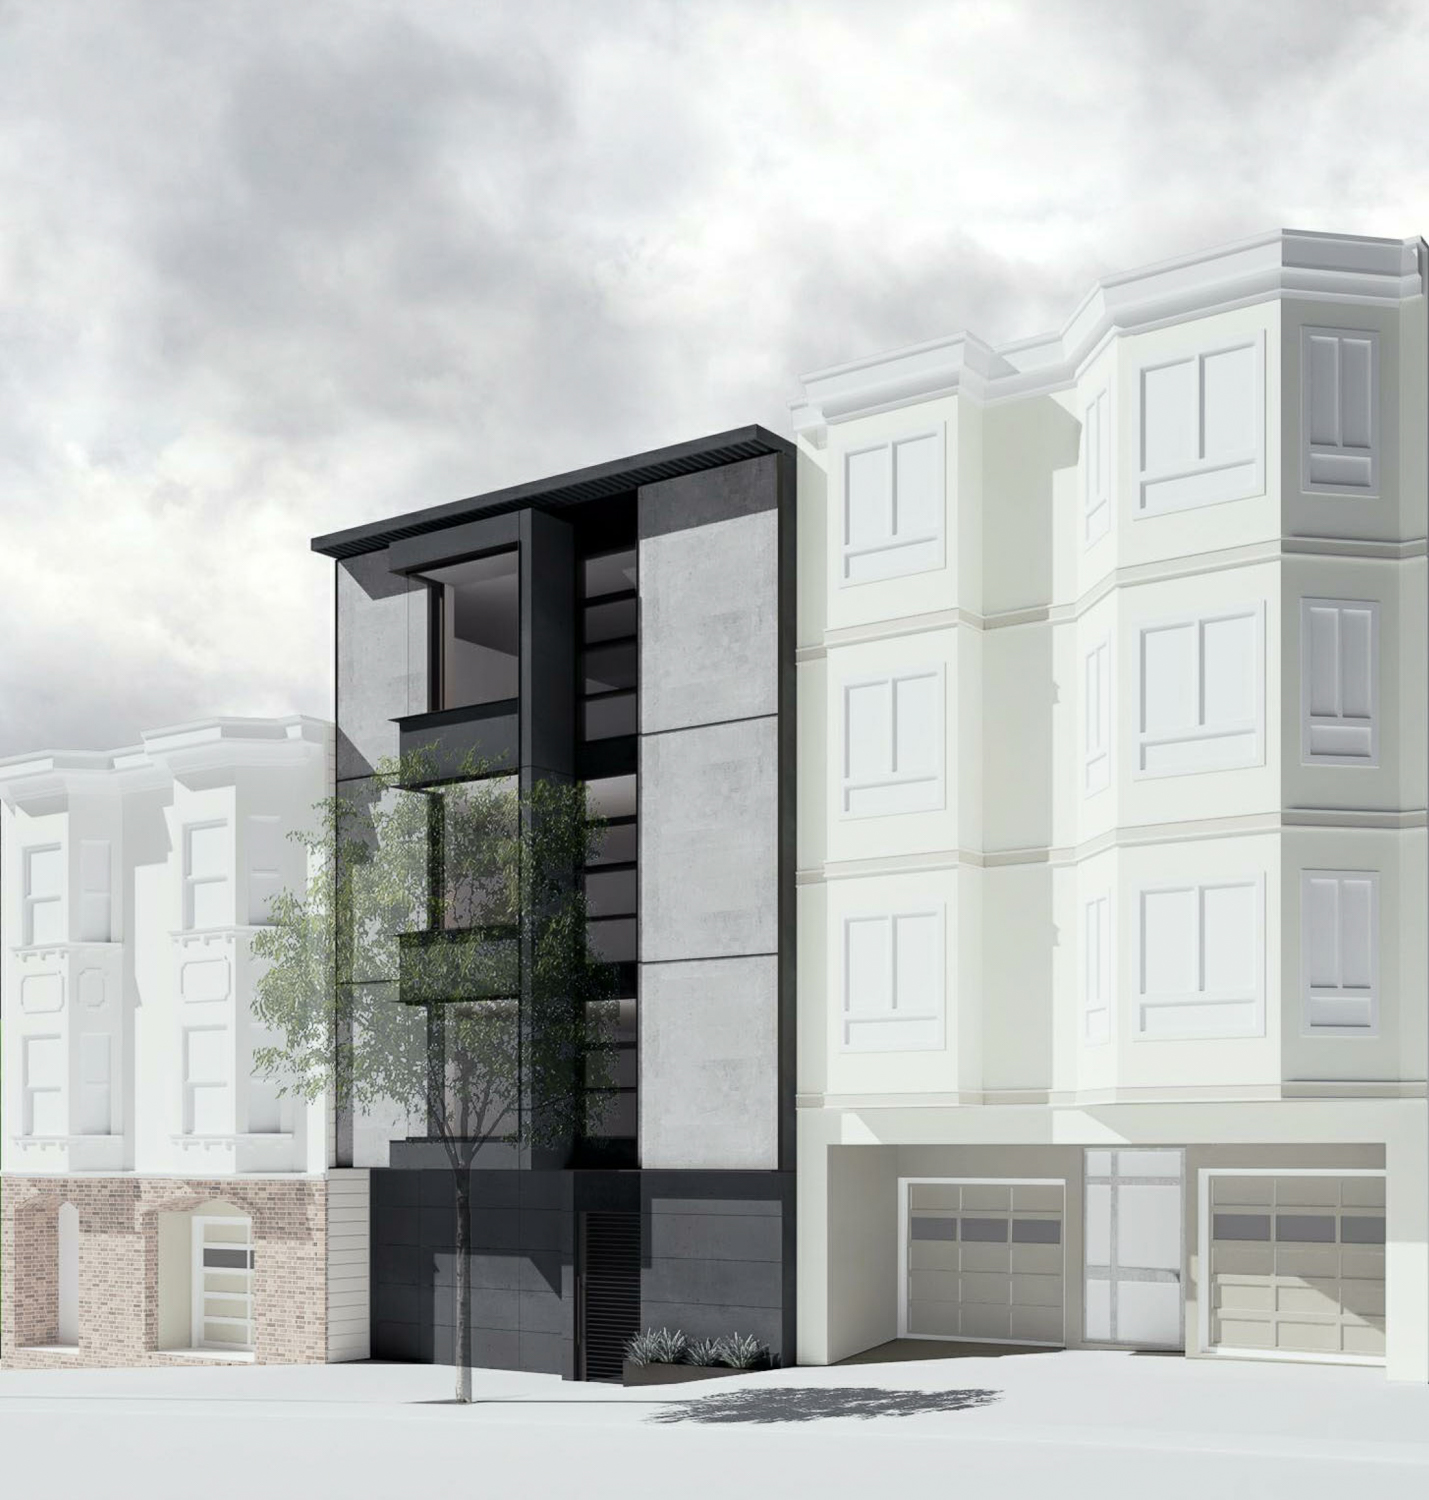 1336 Chestnut Street, rendering by Michael Hennessey Architecture